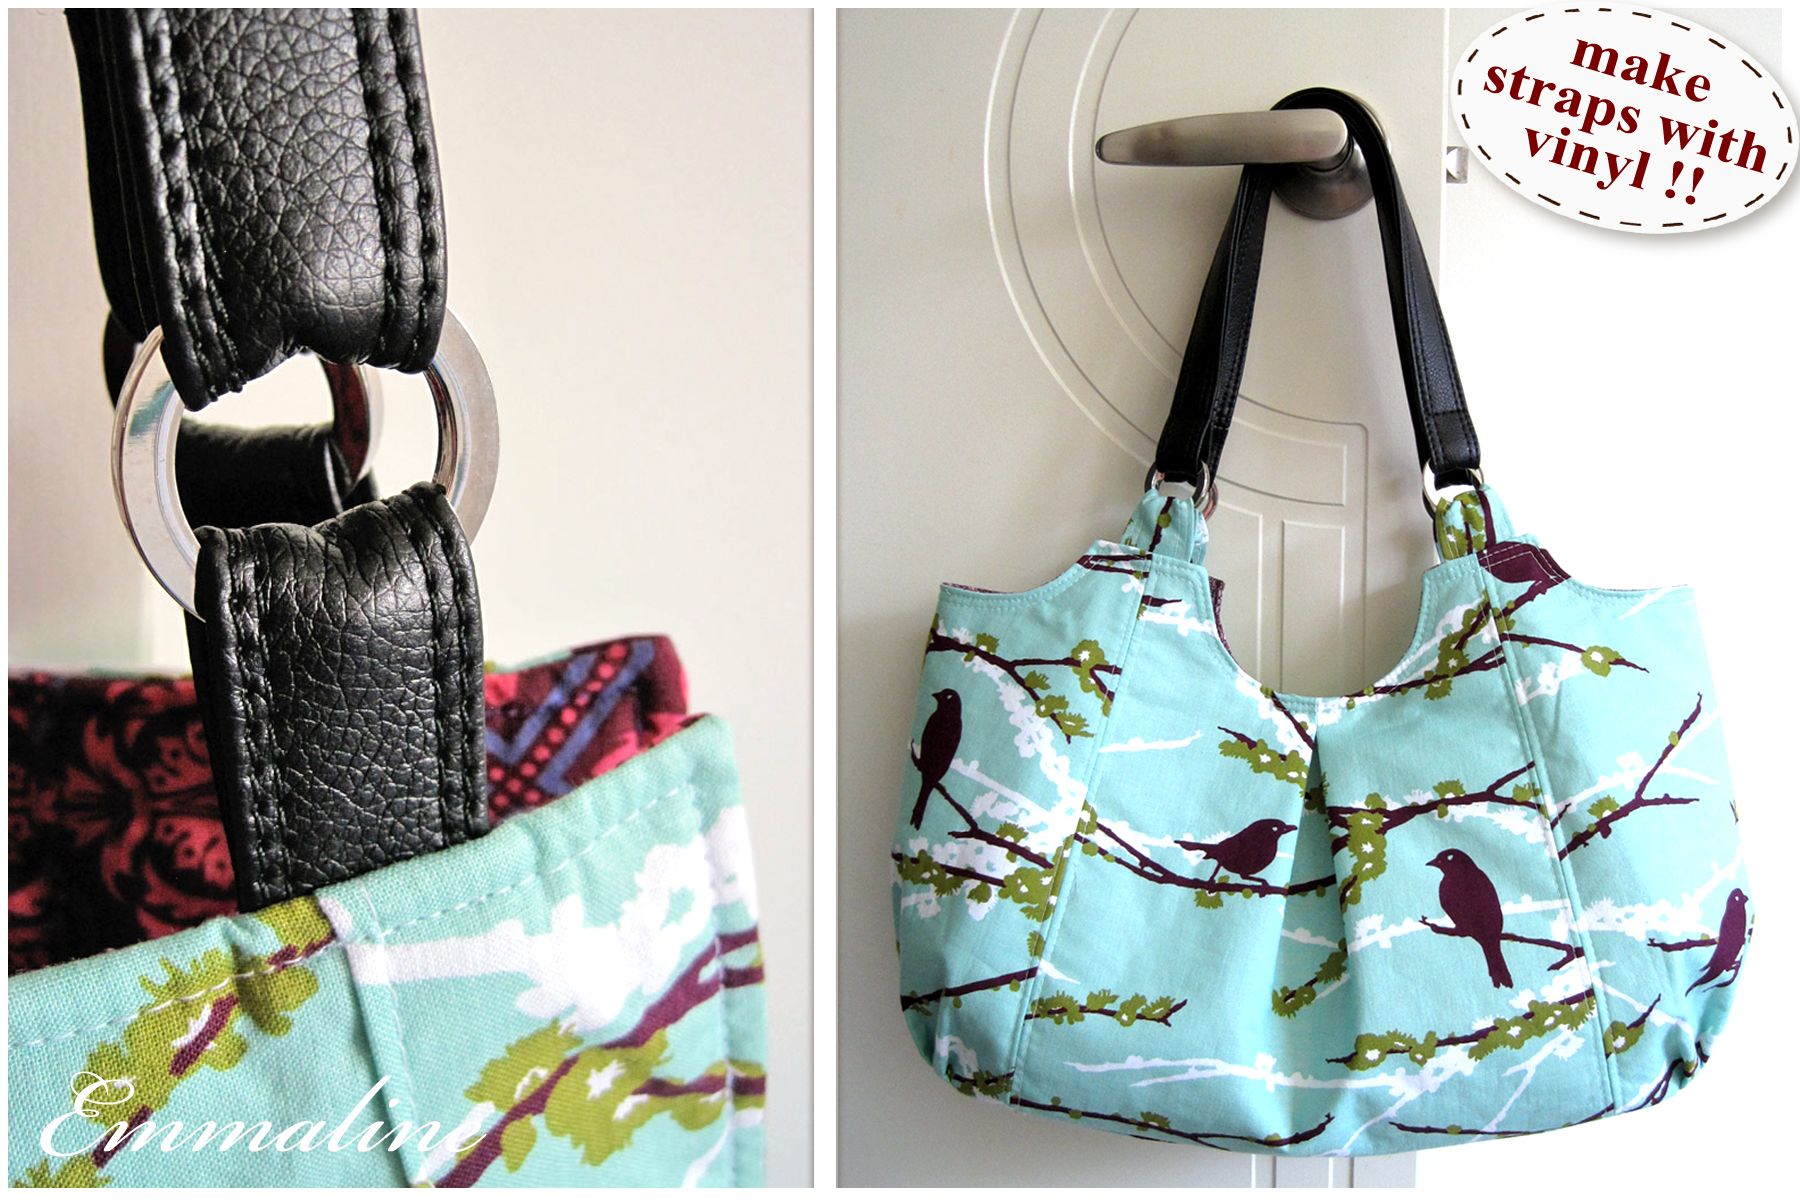 The distinctive element of Toteteca bags is that the bag enthusiasts can Design a Handbag, Bespoke Bag. At Toteteca the bag lovers have an excellent opportunity to experiment and unleash their creative side in custom designing a handbag.